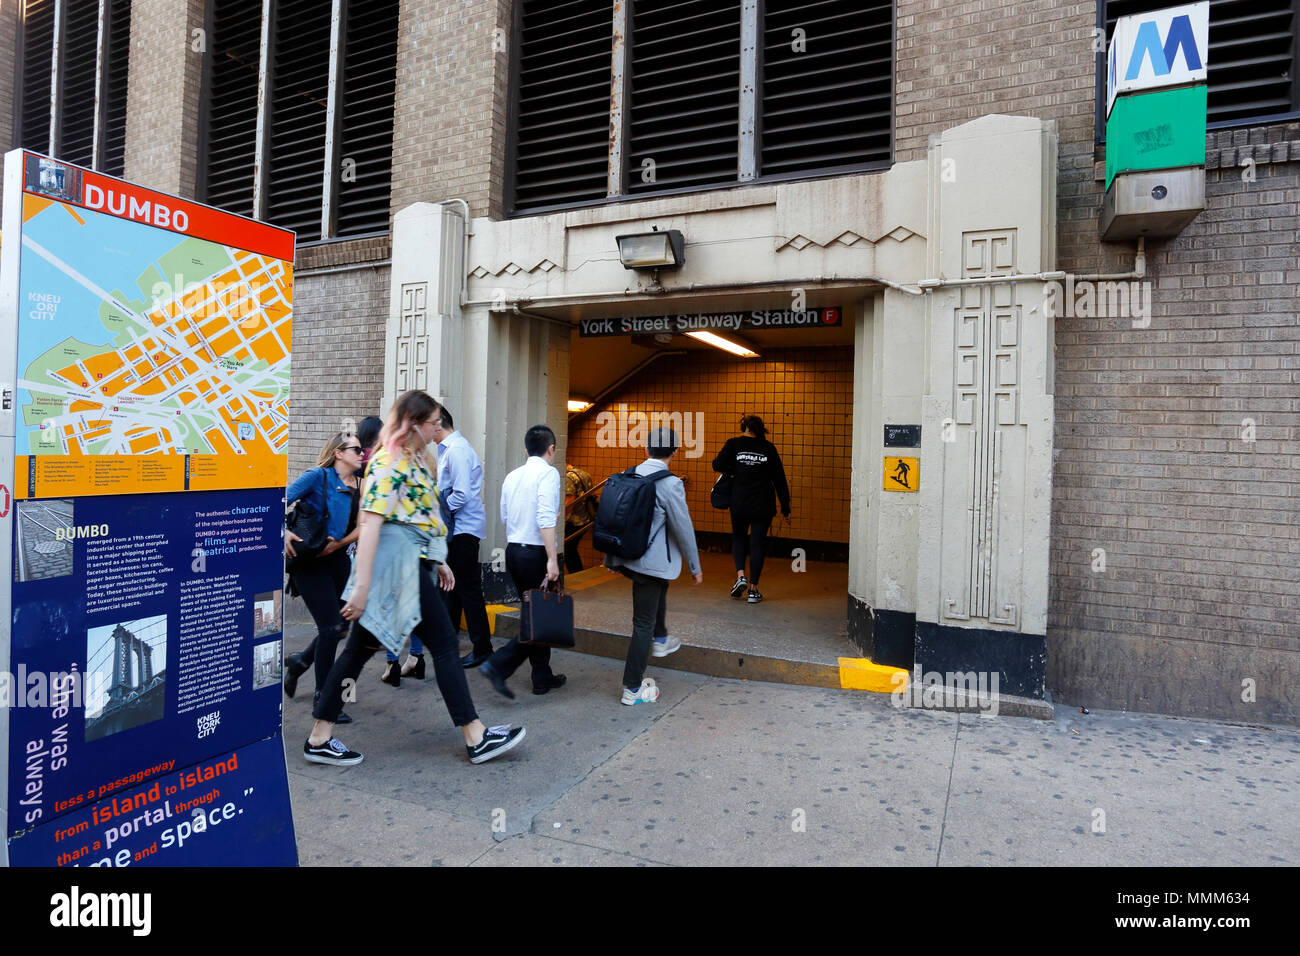 Commuters, people entering the York St subway station in Brooklyn - Stock Image